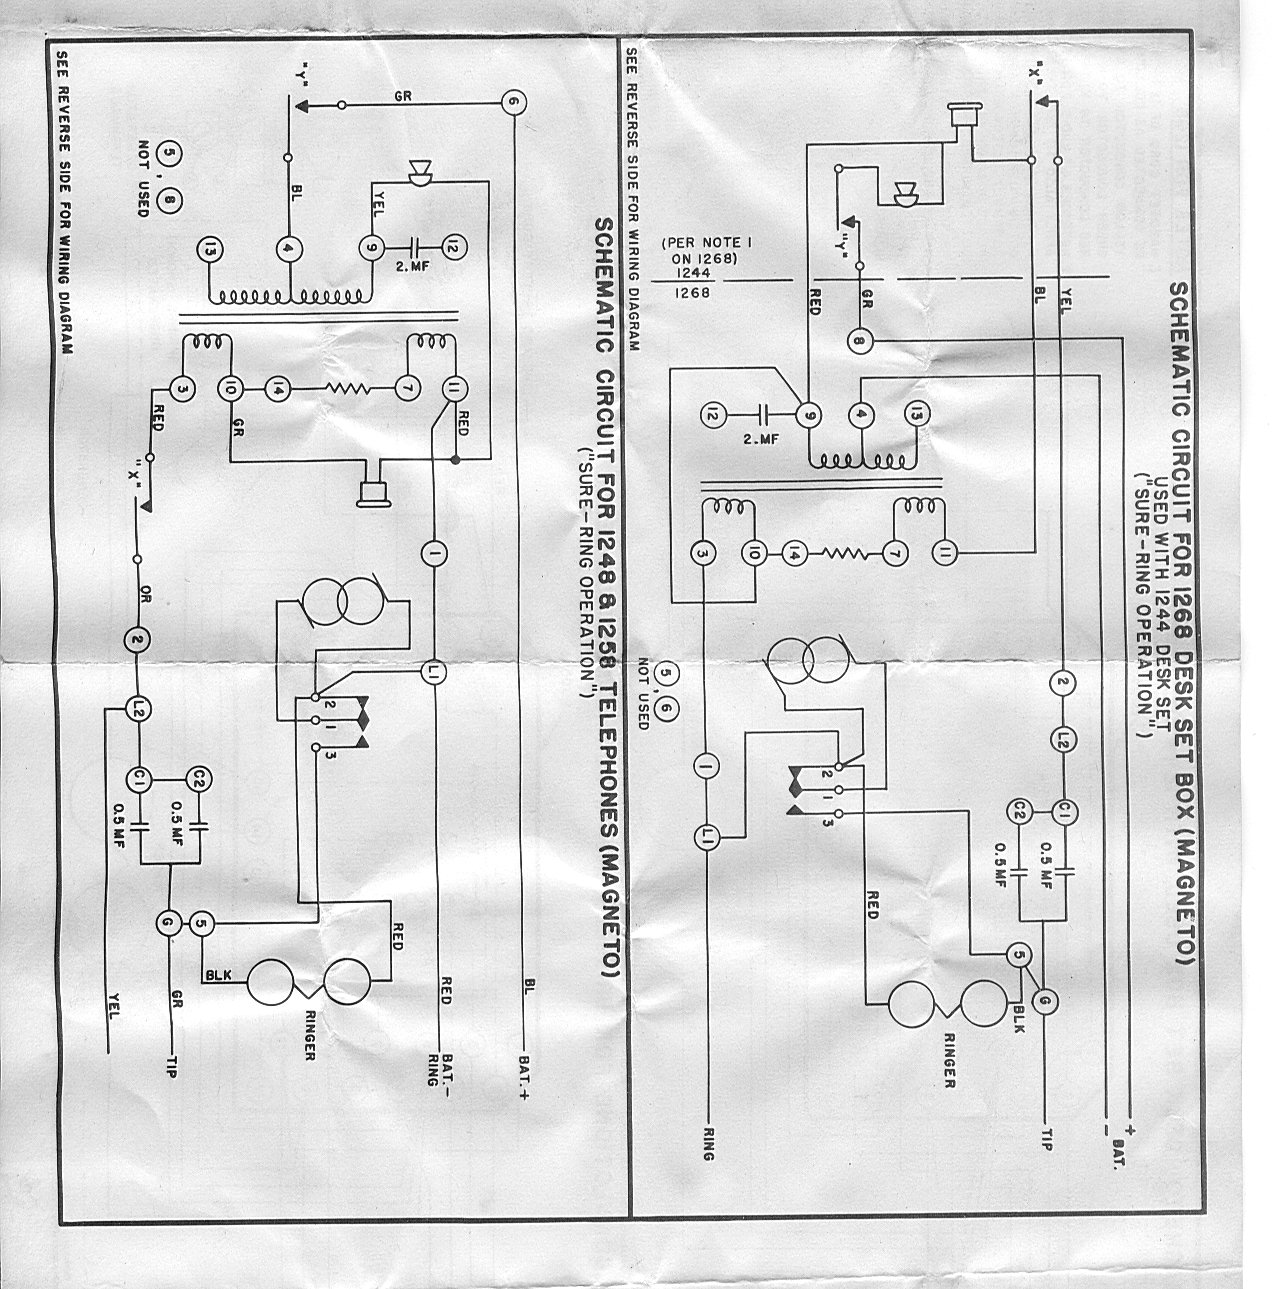 telephone technical references rh kadiak org 2 Stroke Magneto Schematic Bendix Magneto Wiring-Diagram